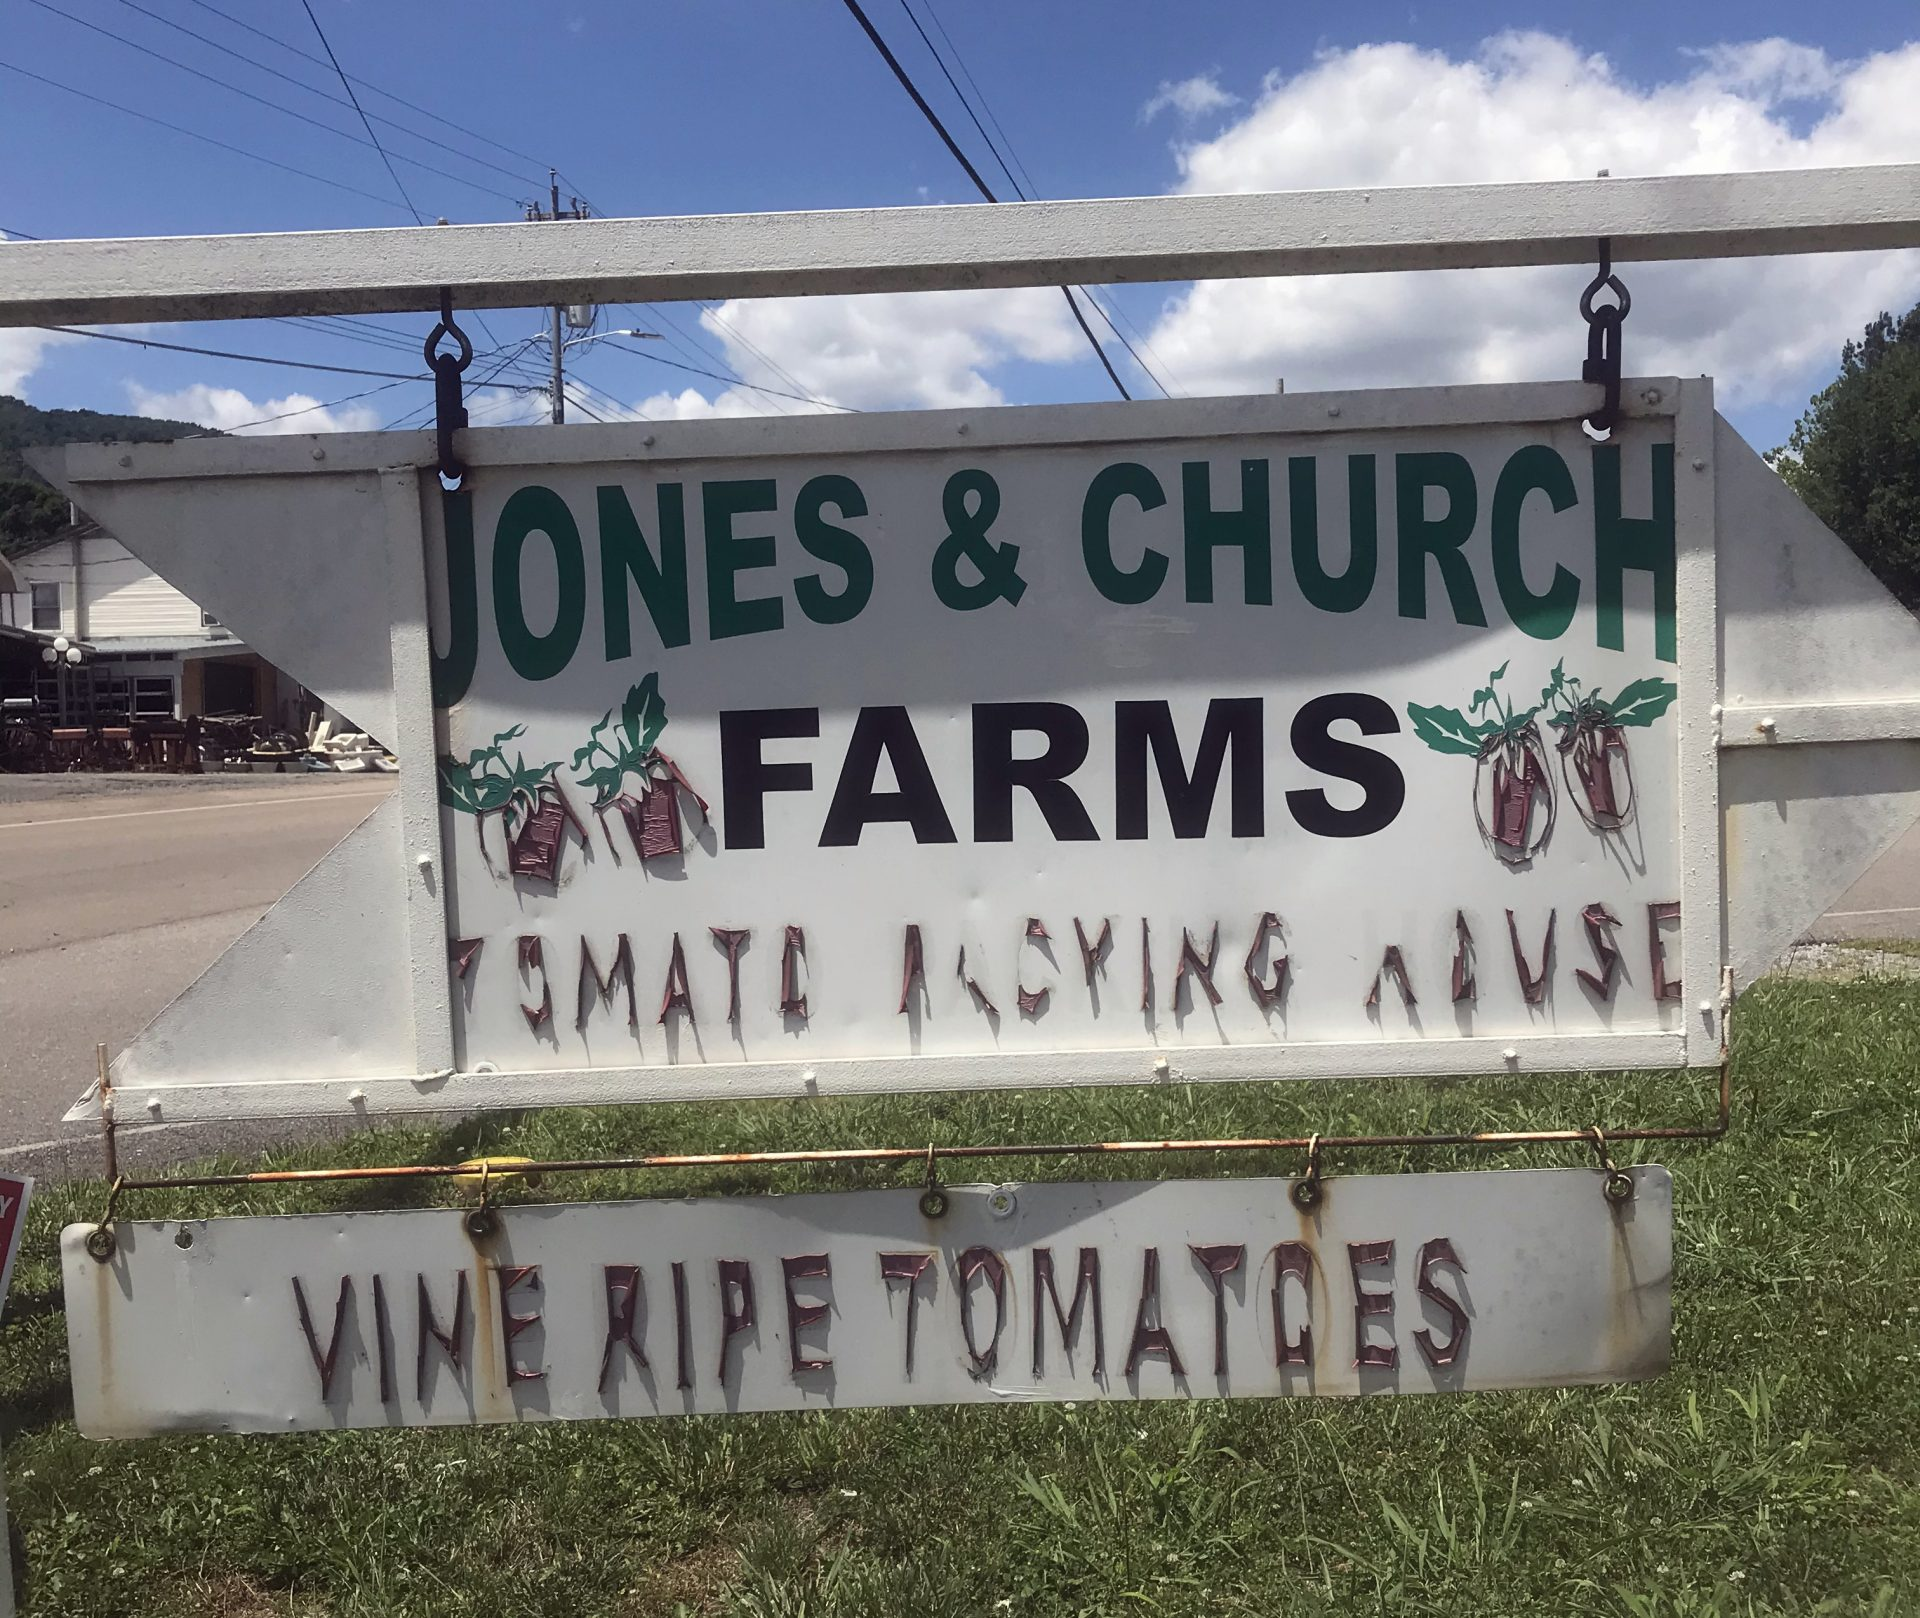 In June, 10 of about 80 temporary workers at Jones & Church Farms in Unicoi County, Tenn., tested positive for COVID-19. Nationally, at least 3,600 positive cases have been reported among farmworkers.